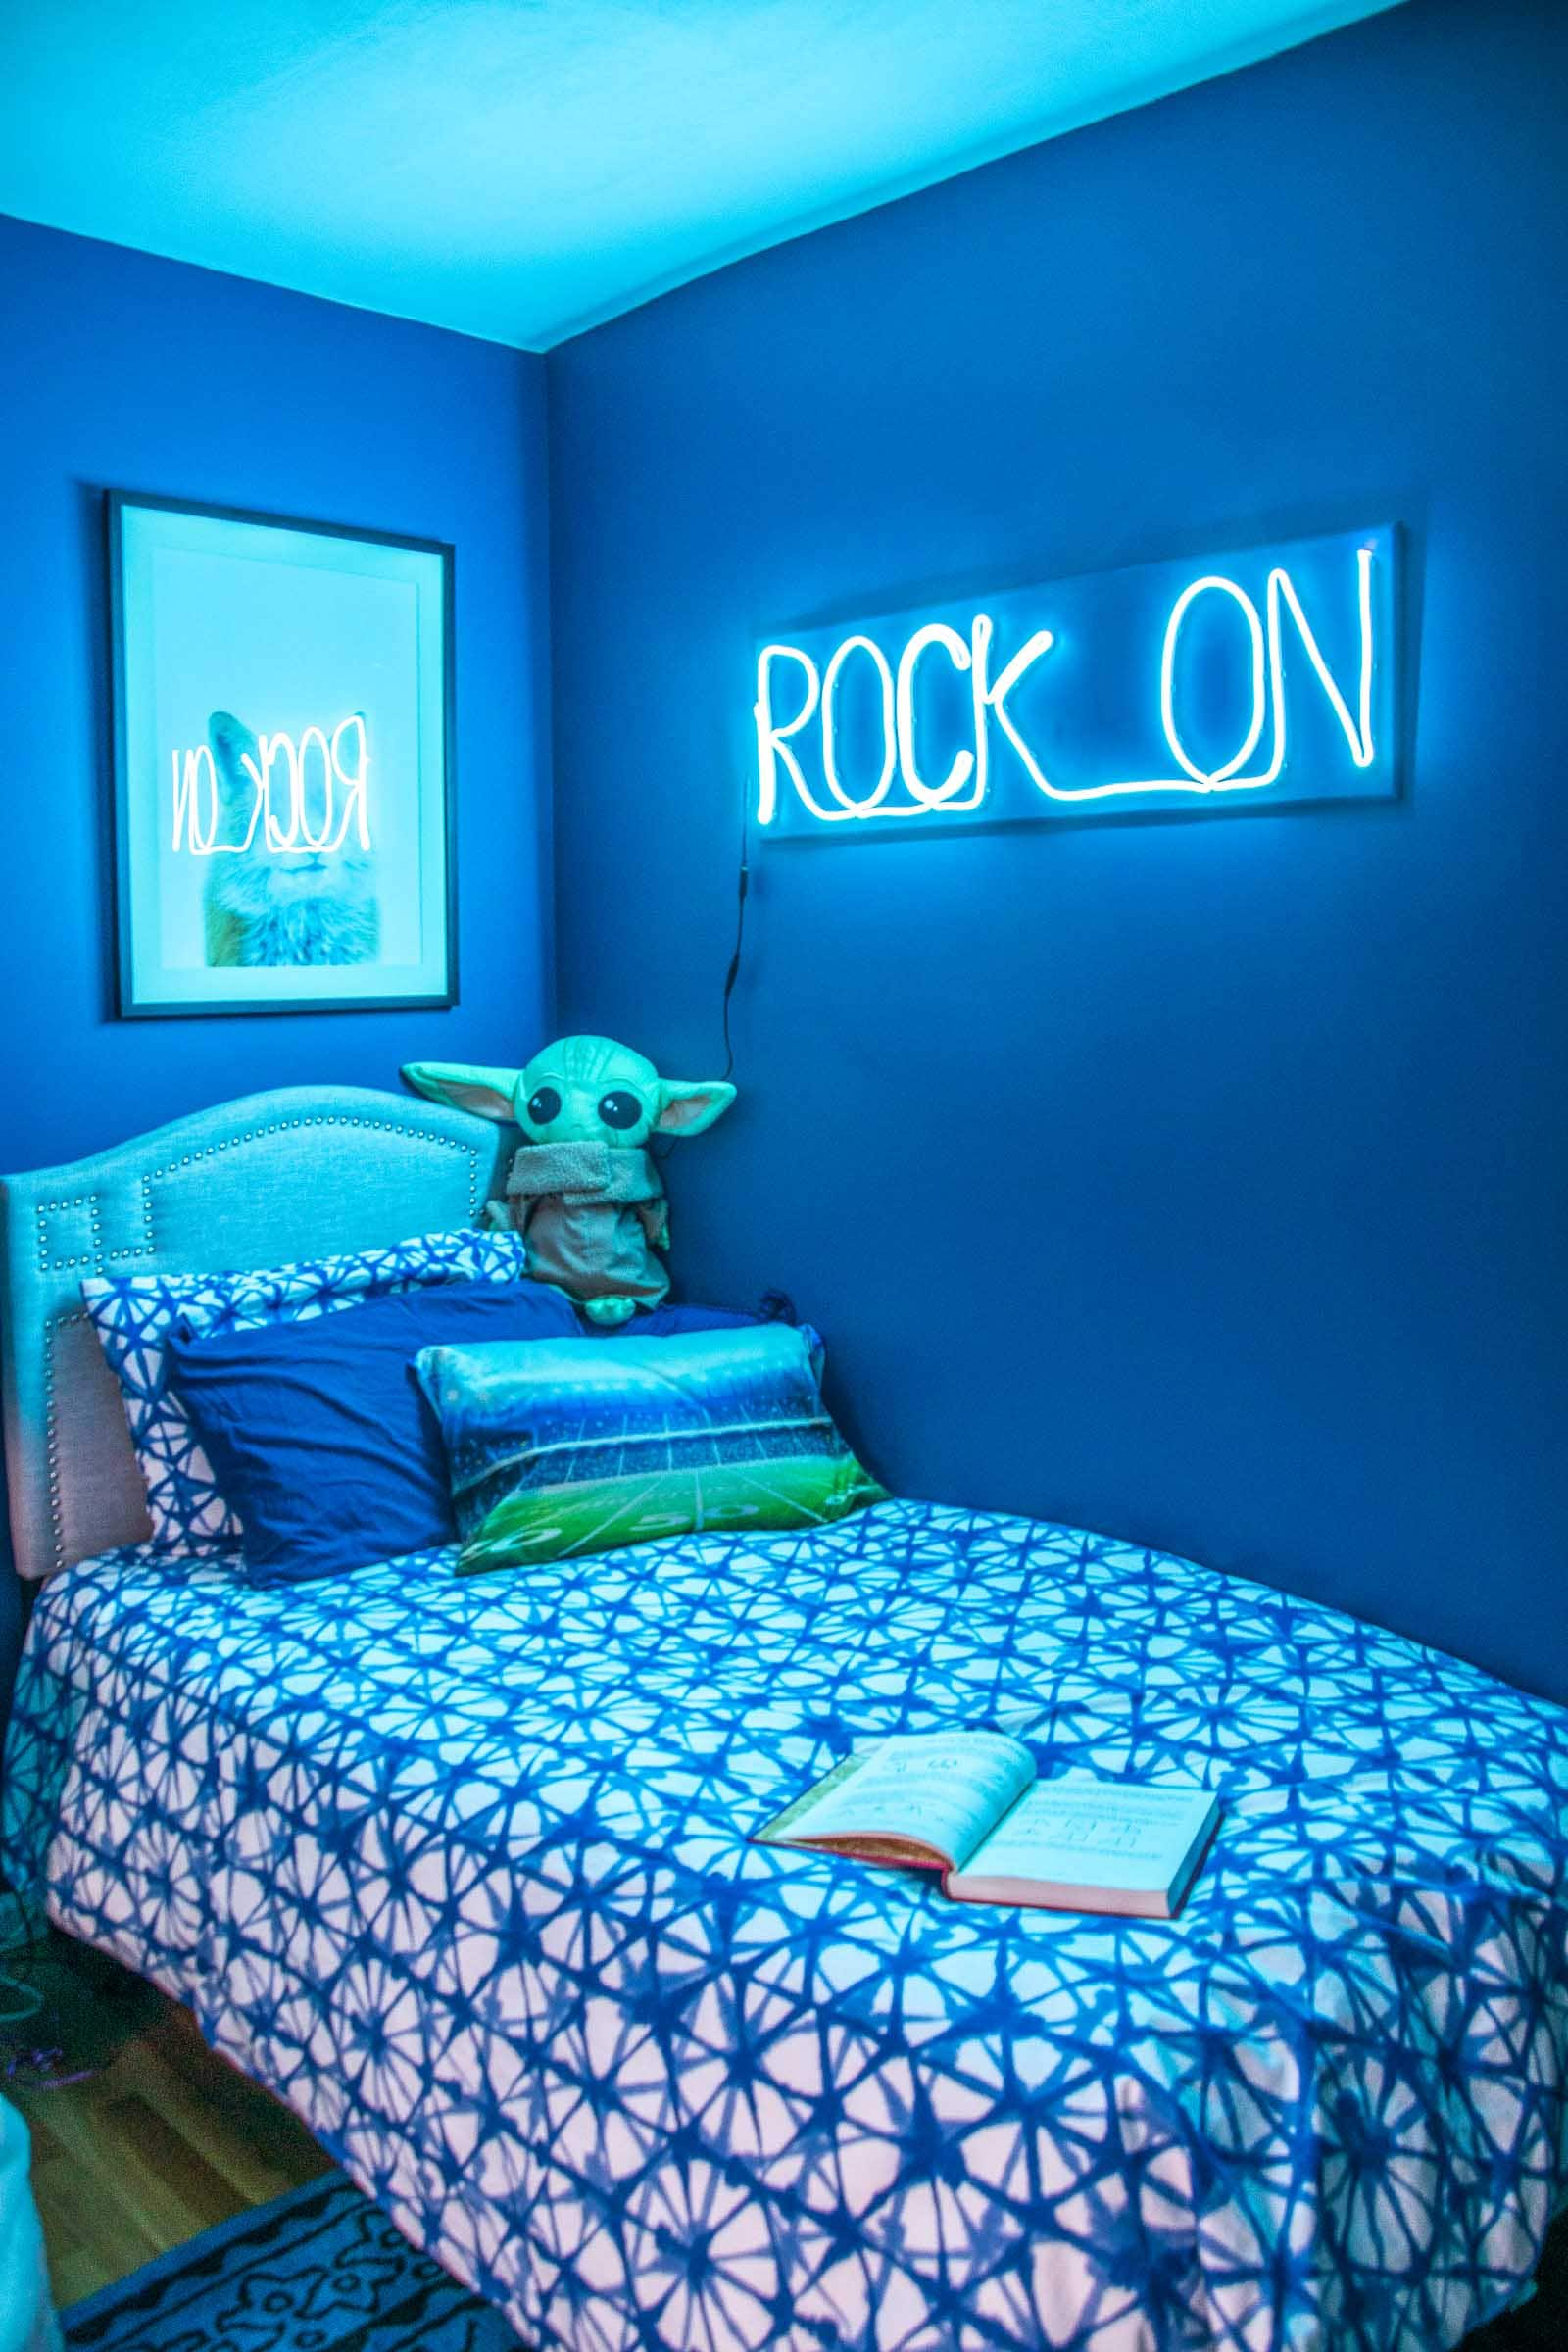 how to make a neon sign